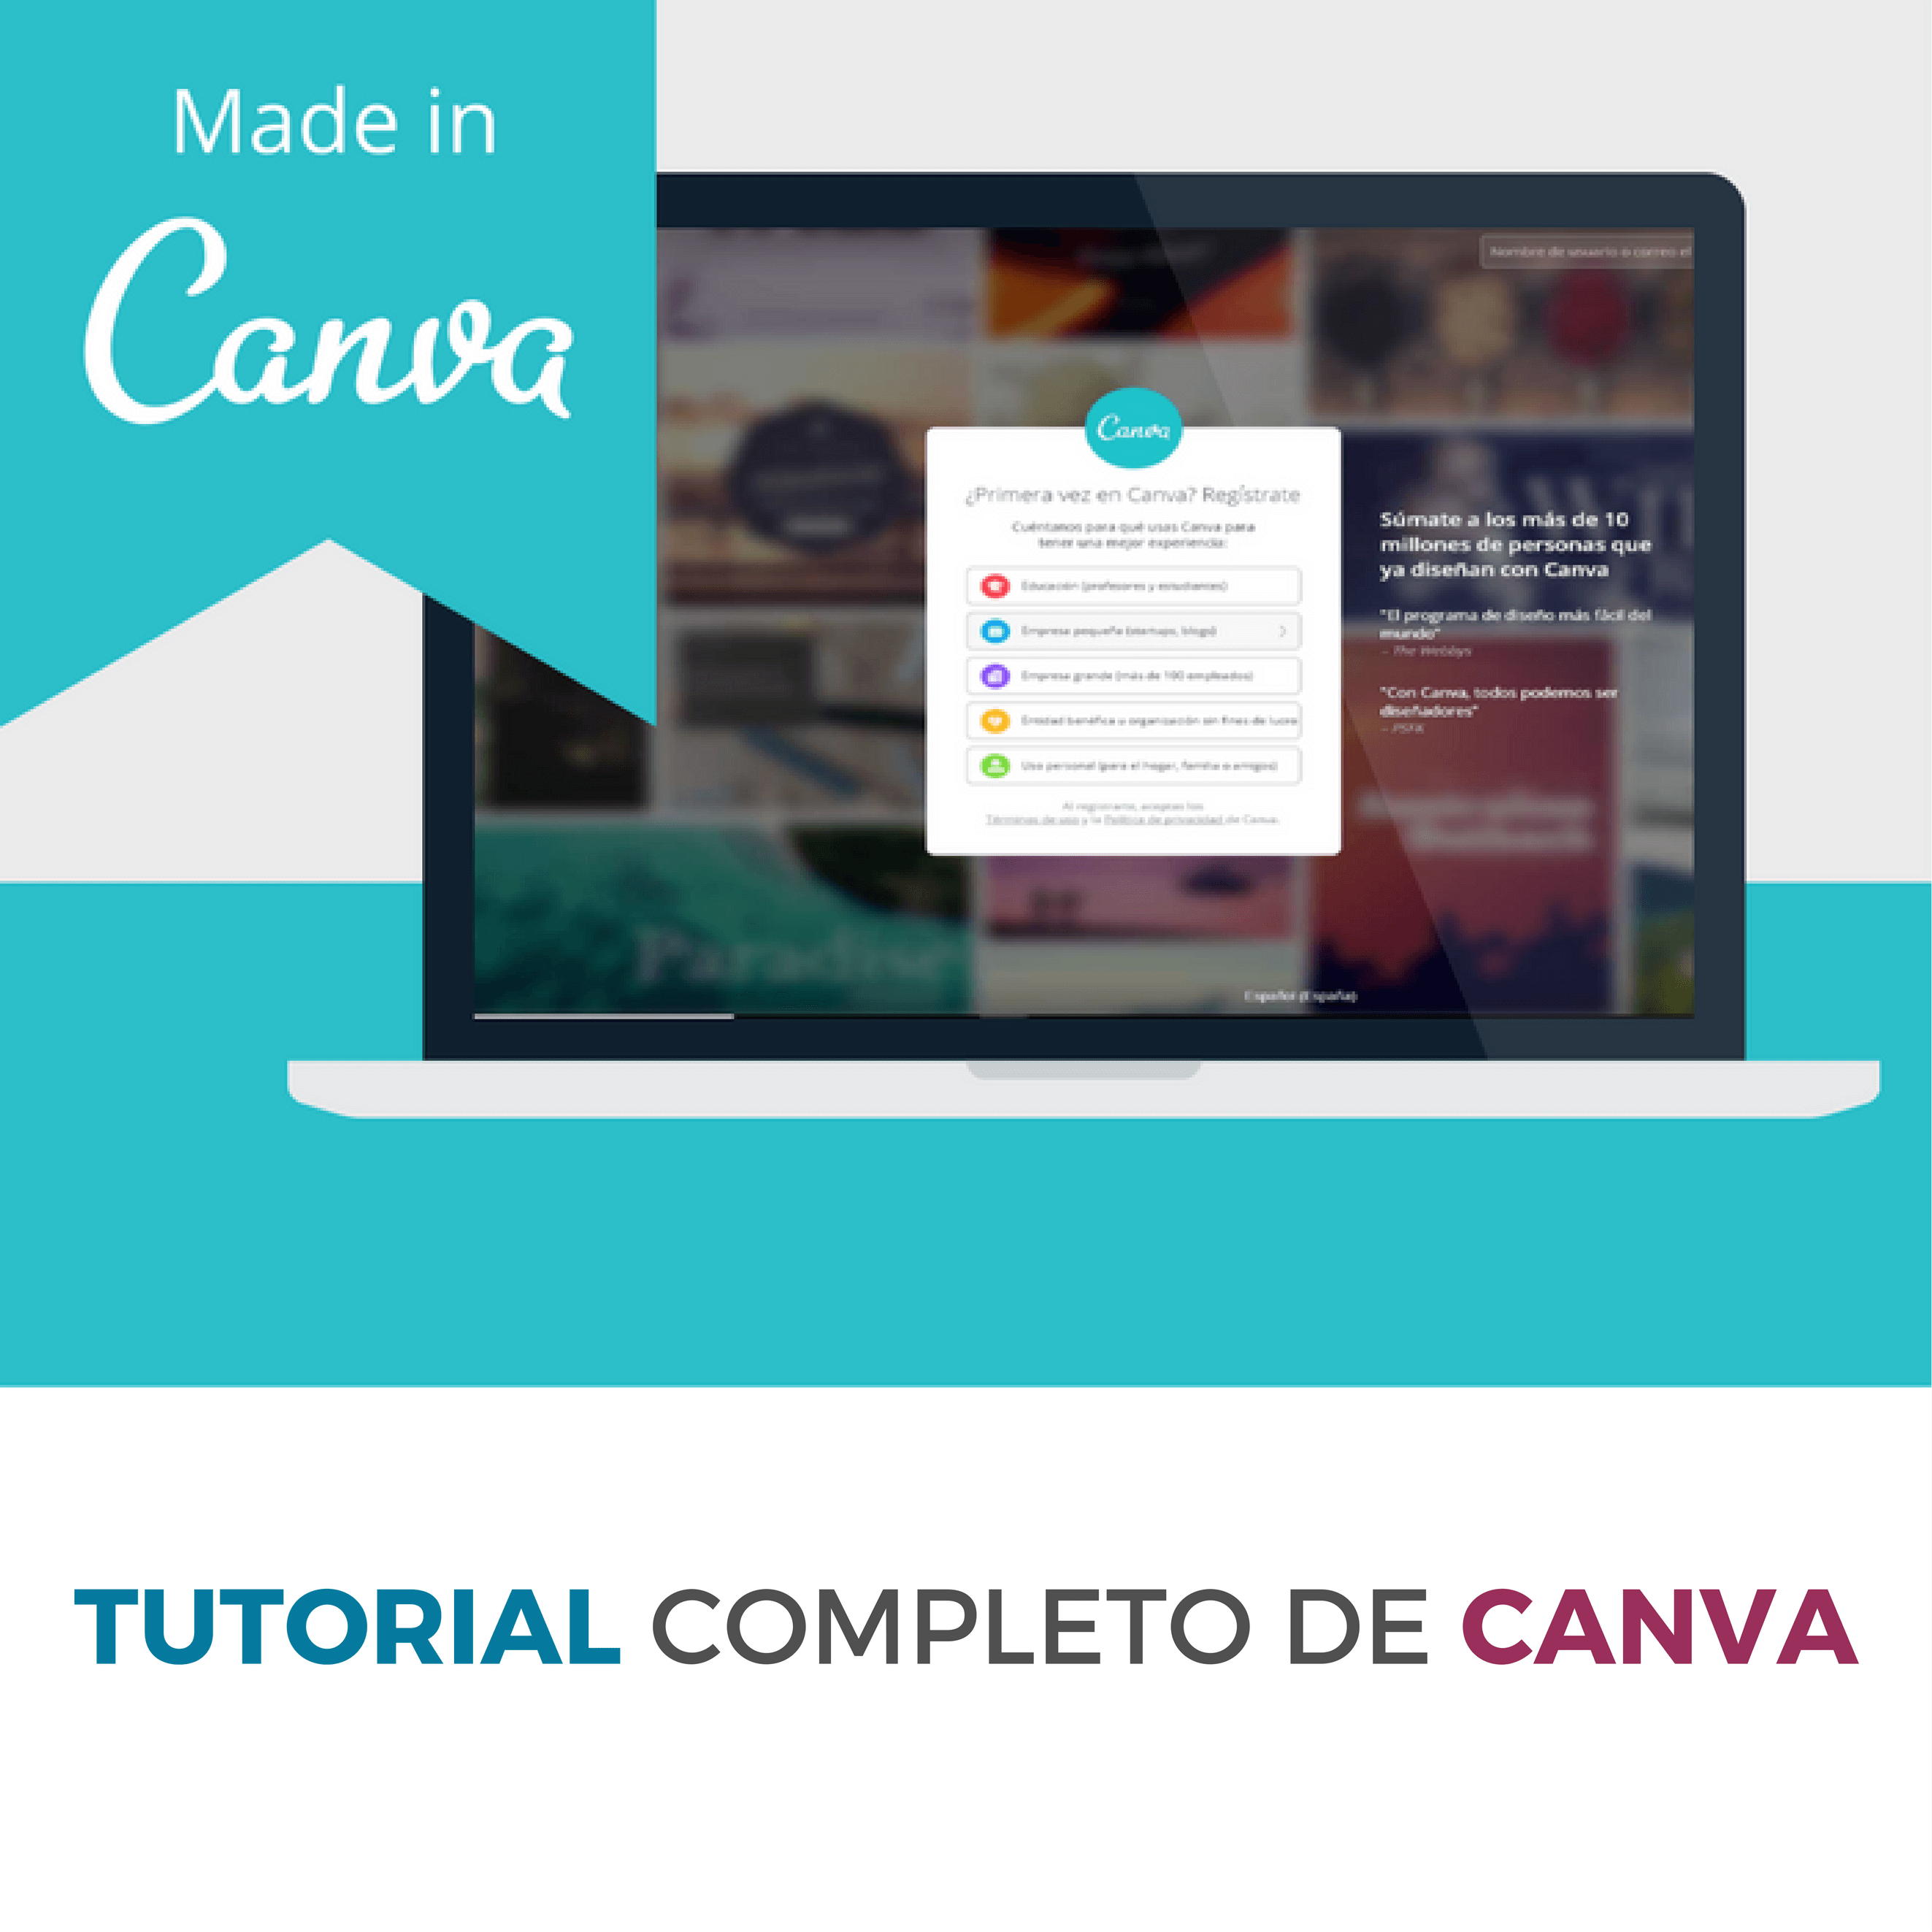 Tutorial completo de CANVA